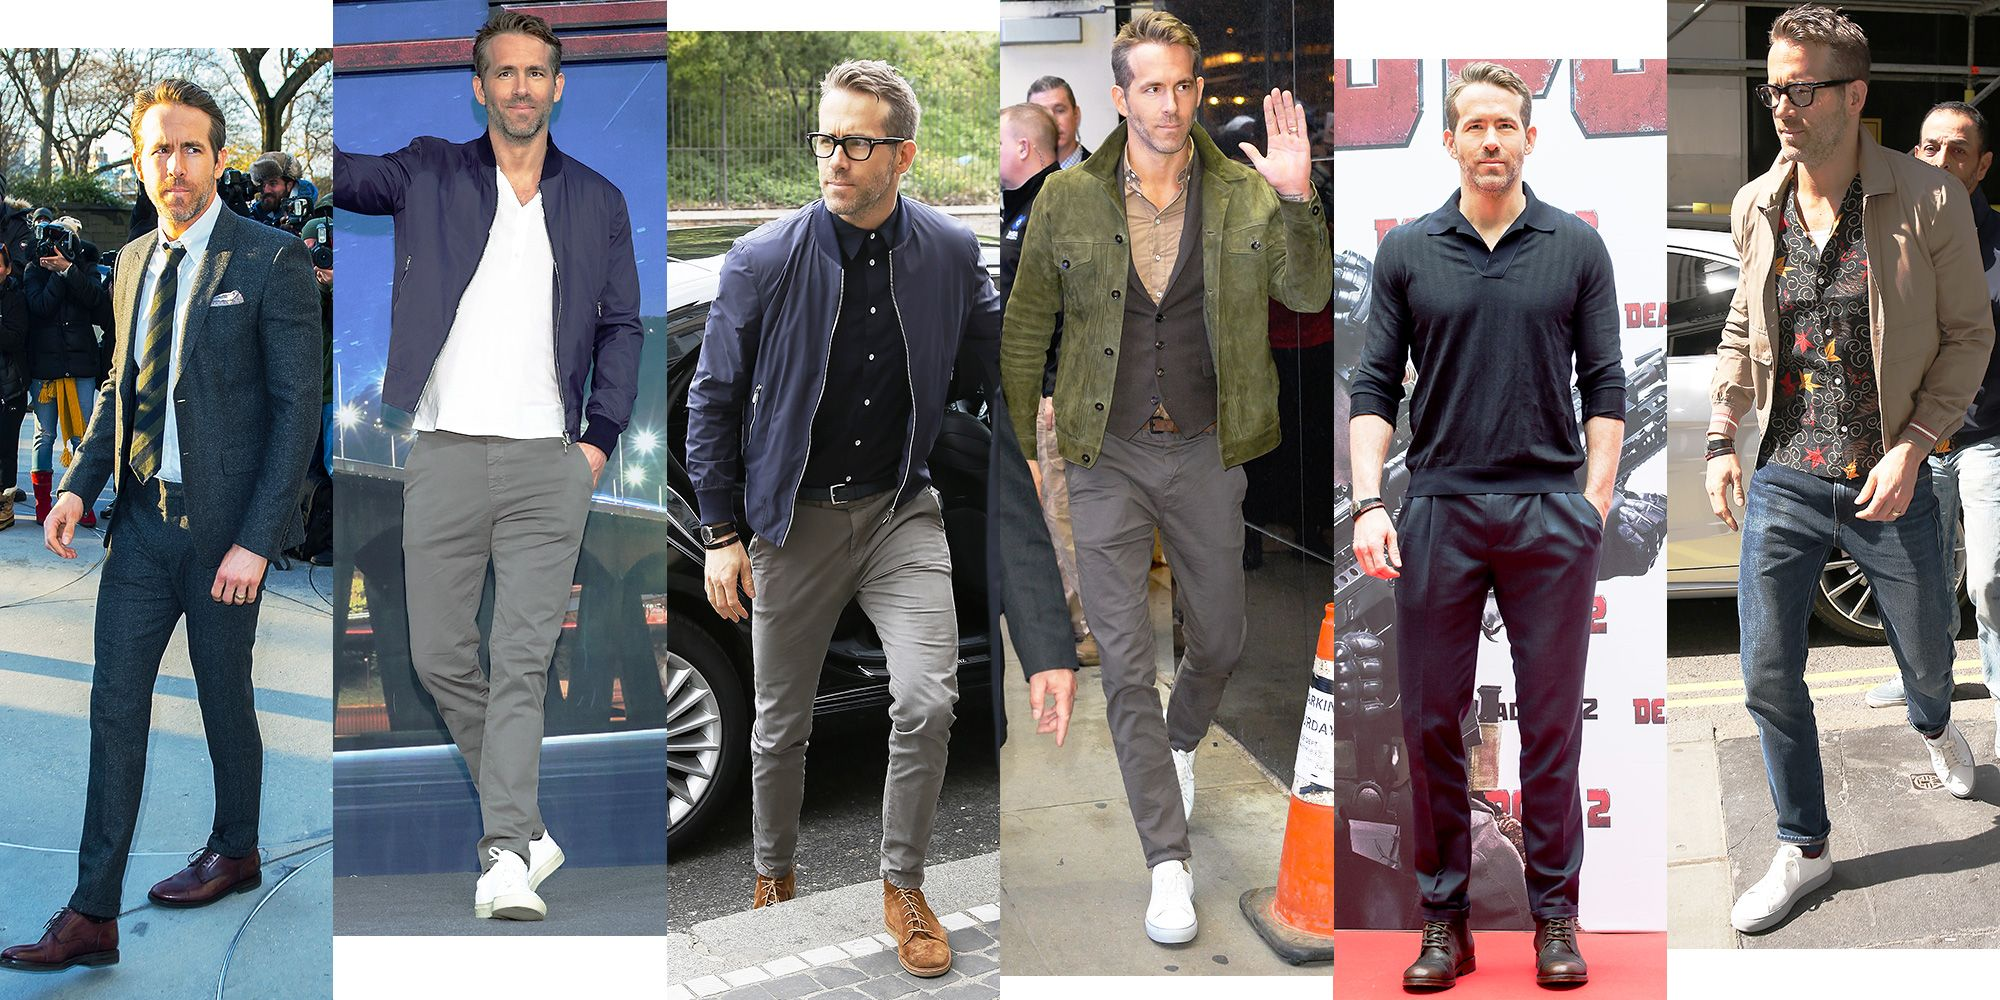 Ryan Reynolds Is Absolutely Crushing the Style on His Deadpool 2 Press Tour